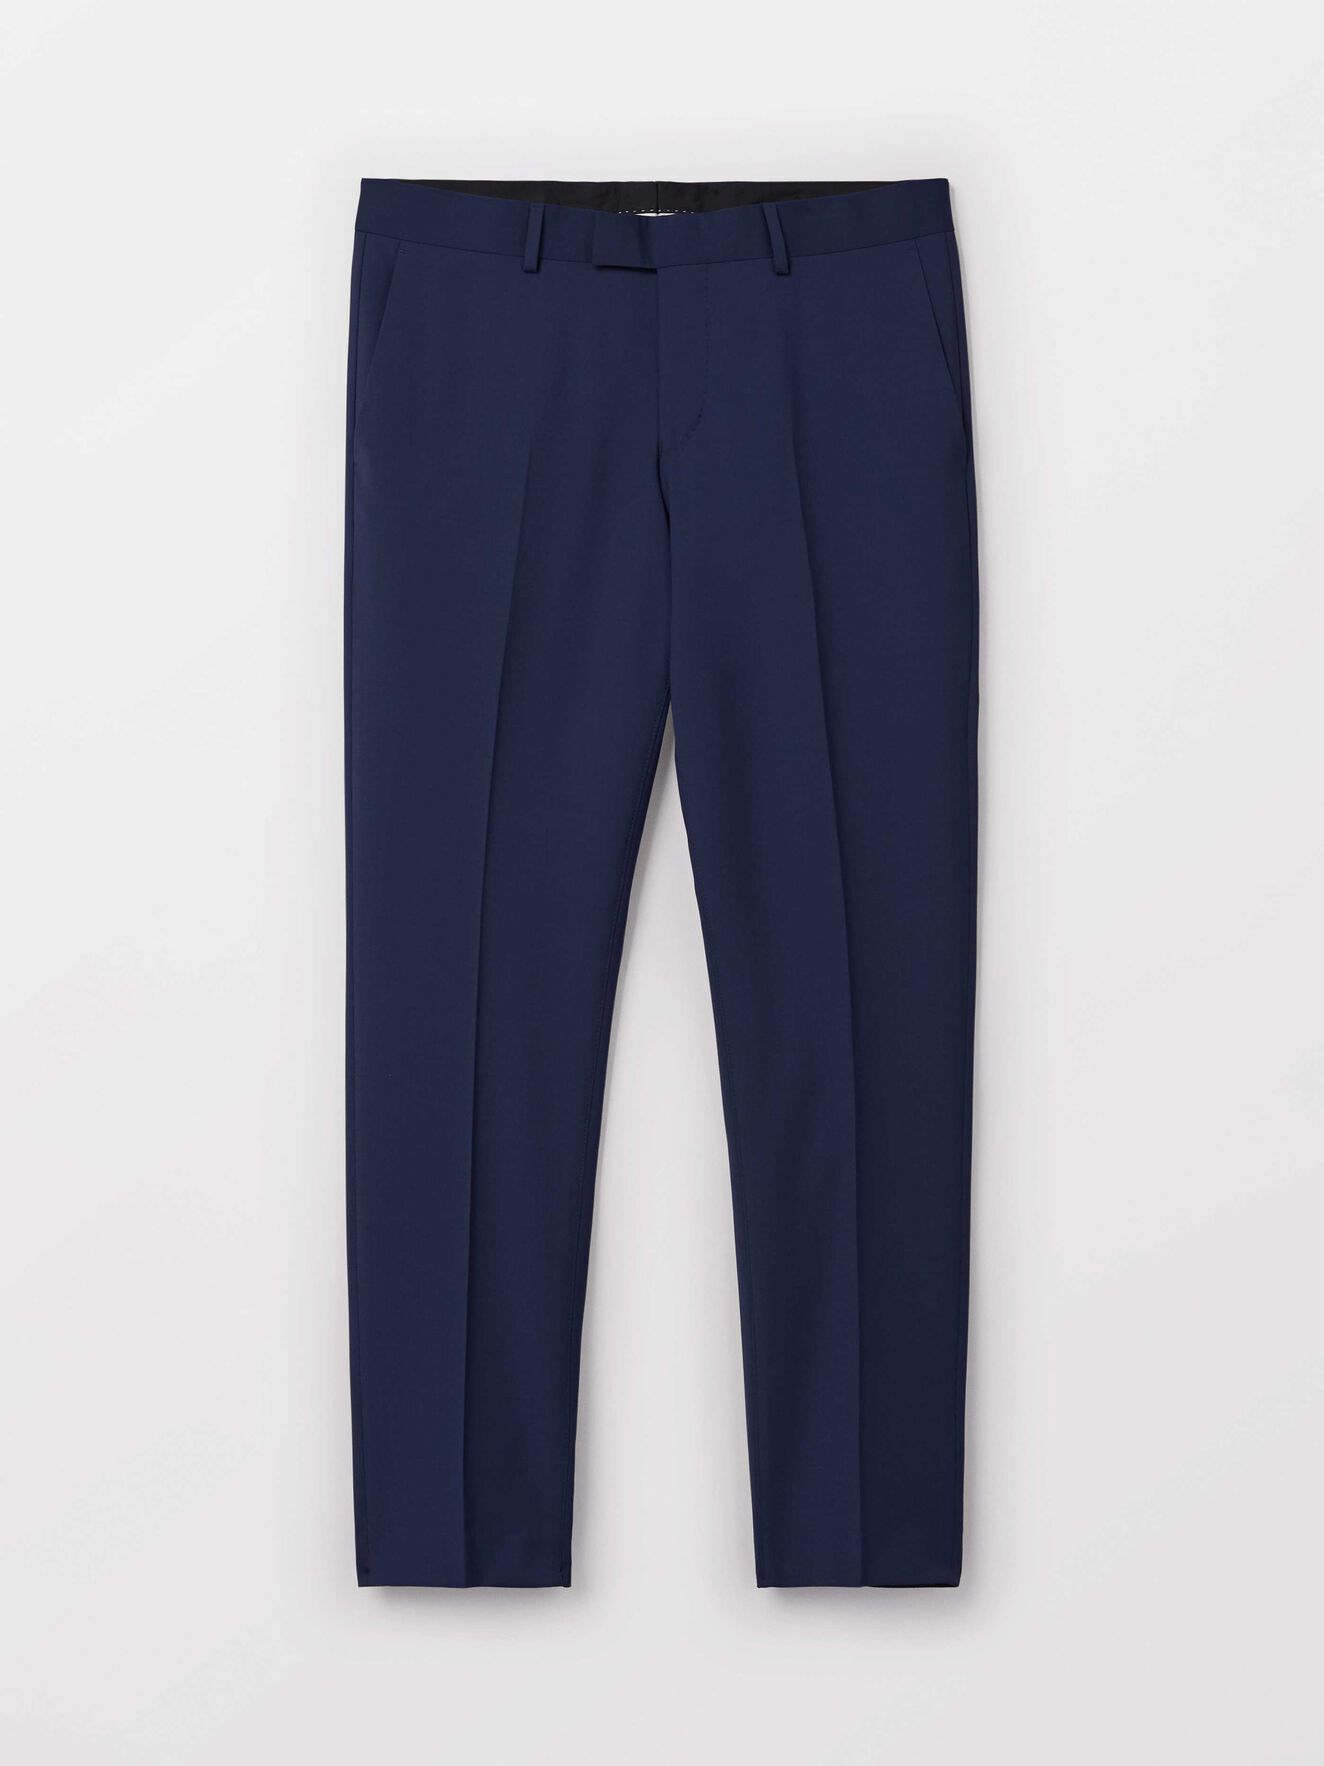 Tordon Trousers in Blue from Tiger of Sweden